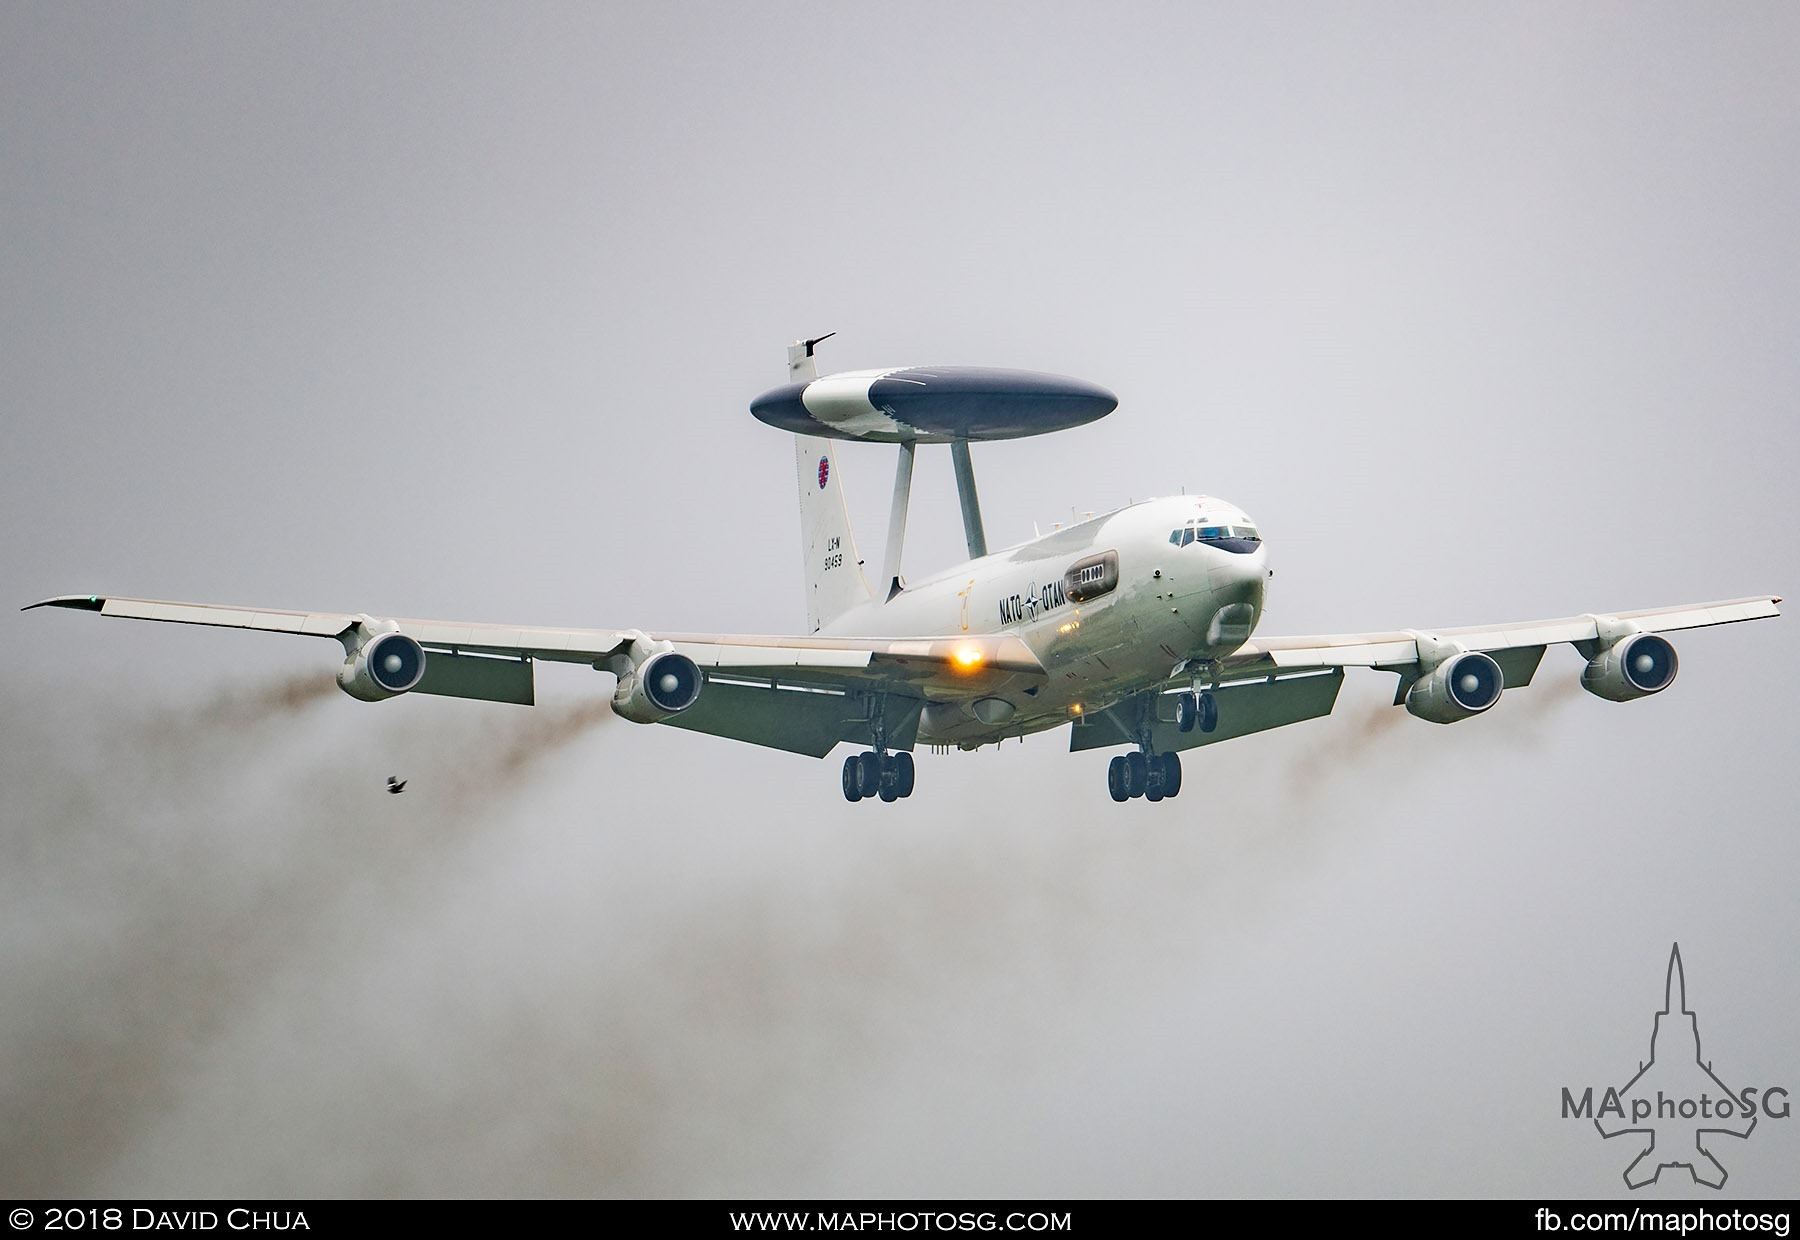 29. NATO E-3A Sentry AWACS did a flypast over the runway